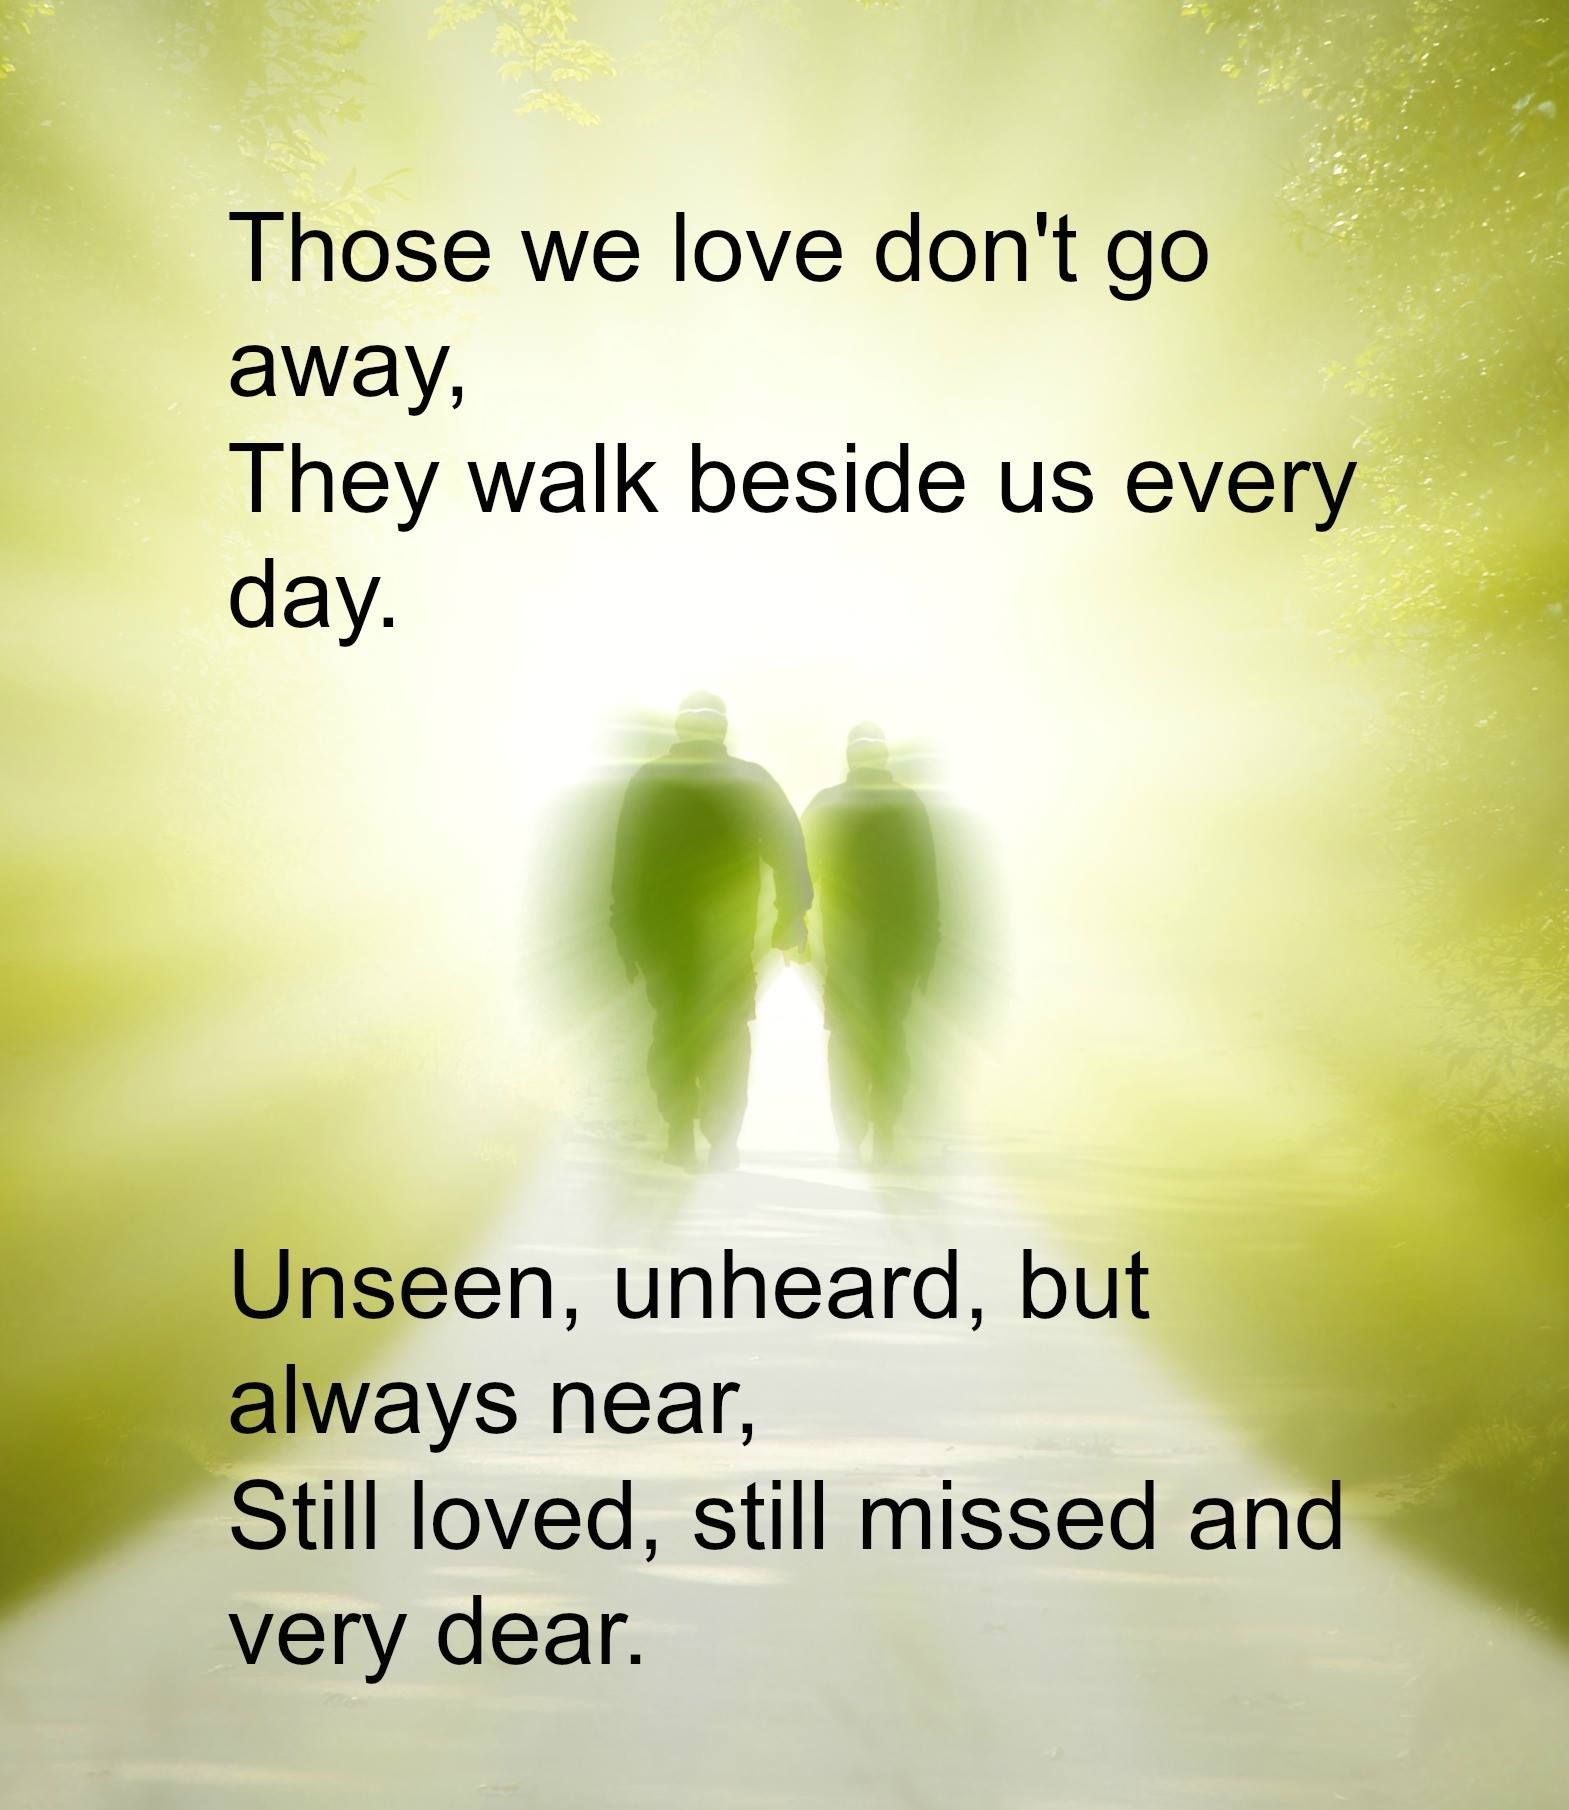 We Love You Mom Quotes Those We Love Don't Go Awaythey Walk Beside Us Every Dayunseen